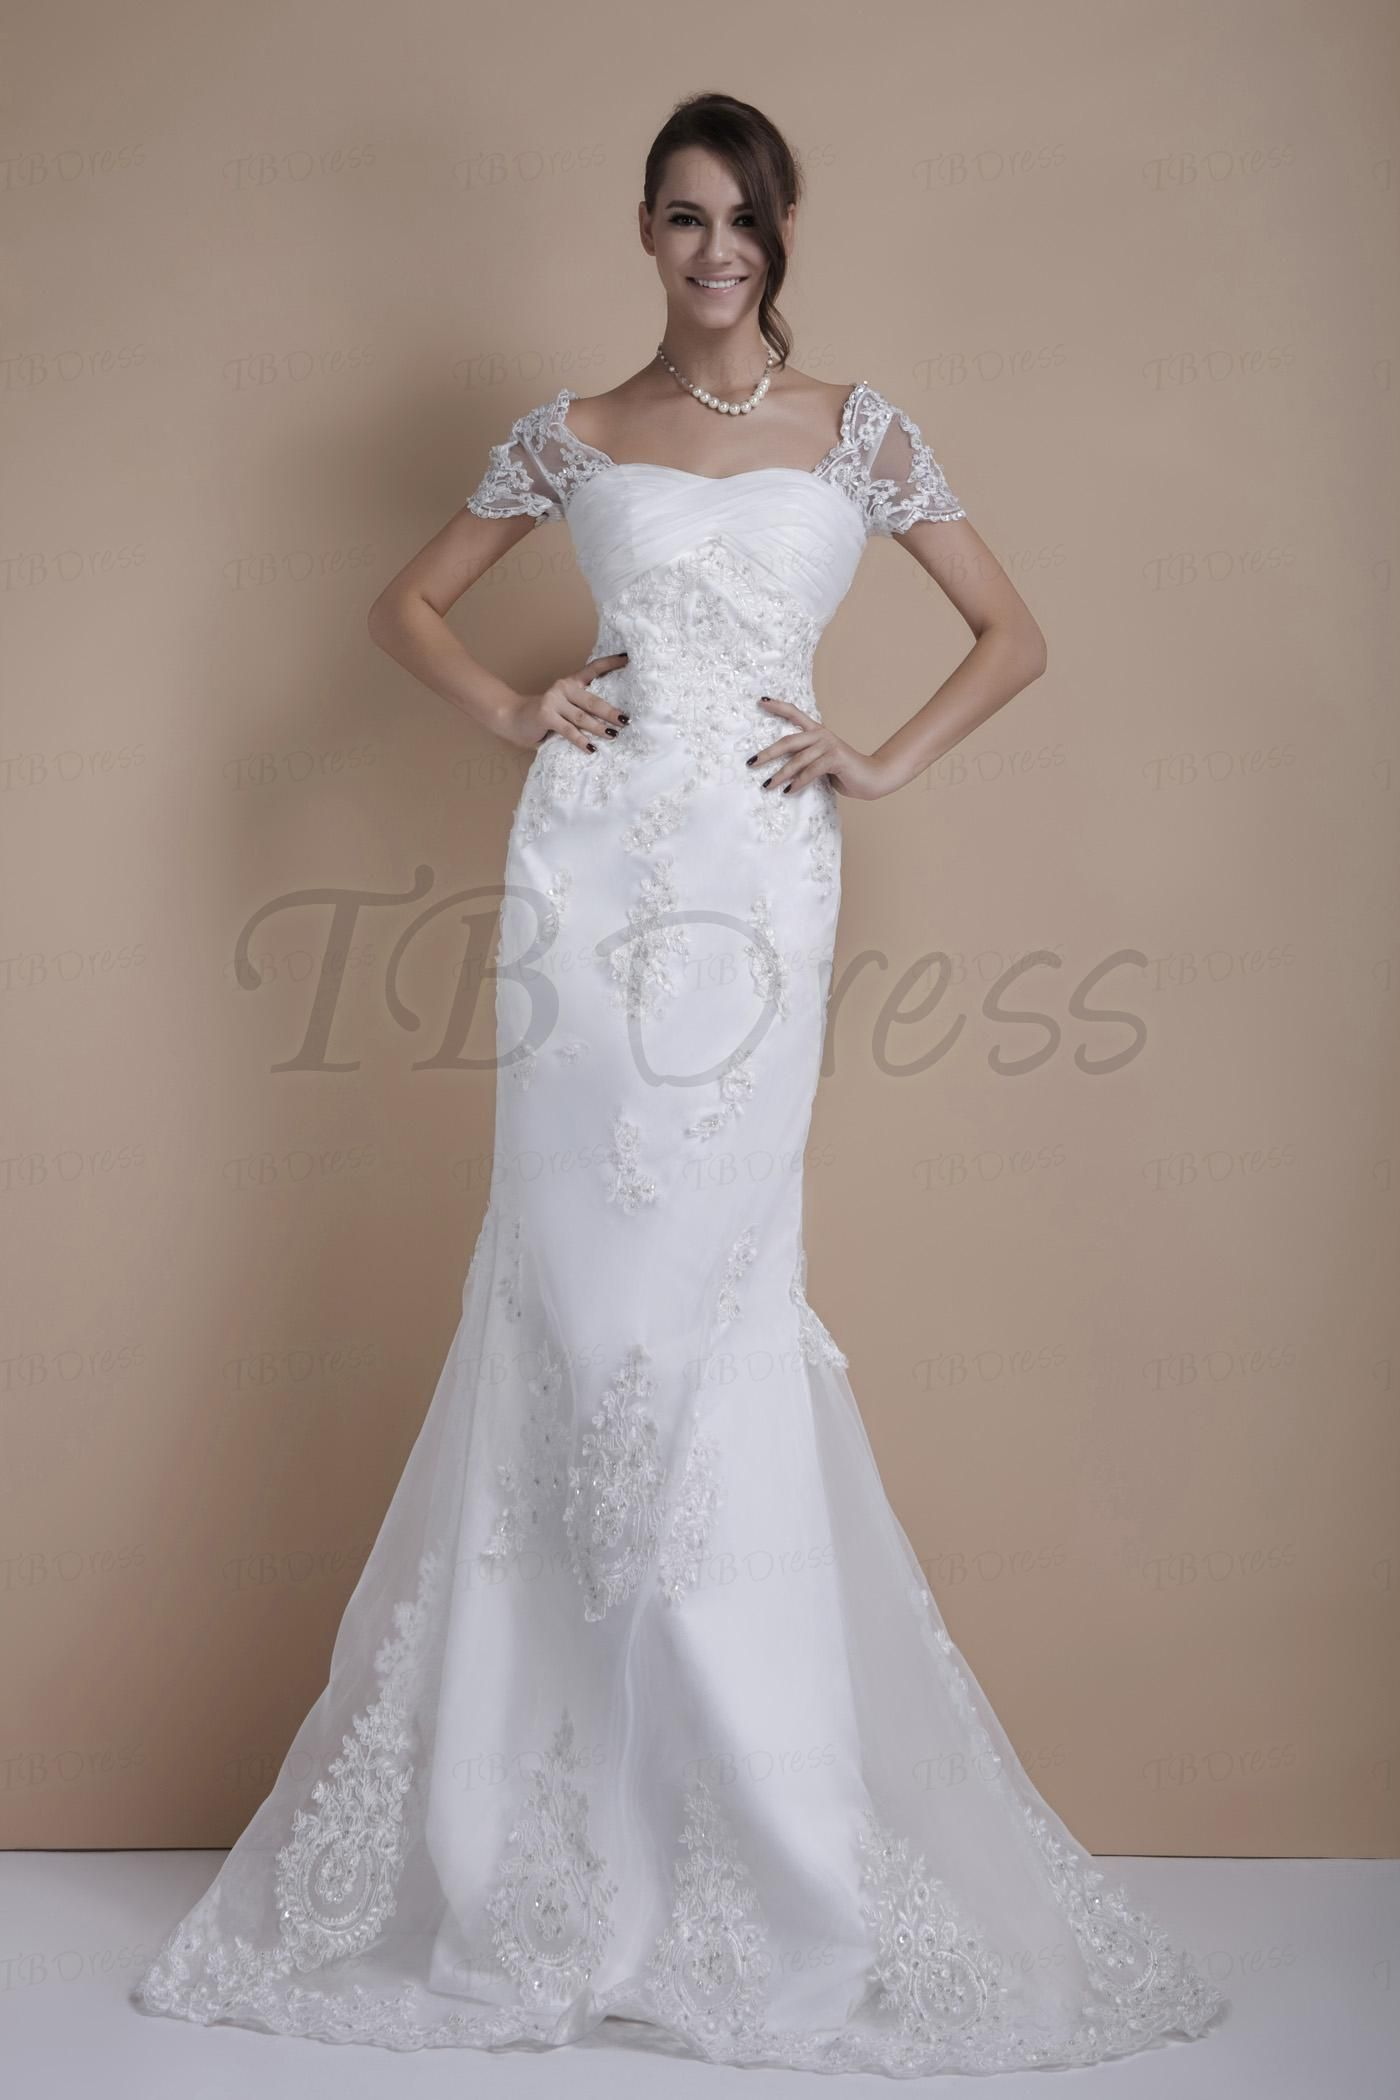 Trumpetmermaid short sleeves court train sandraus wedding dress